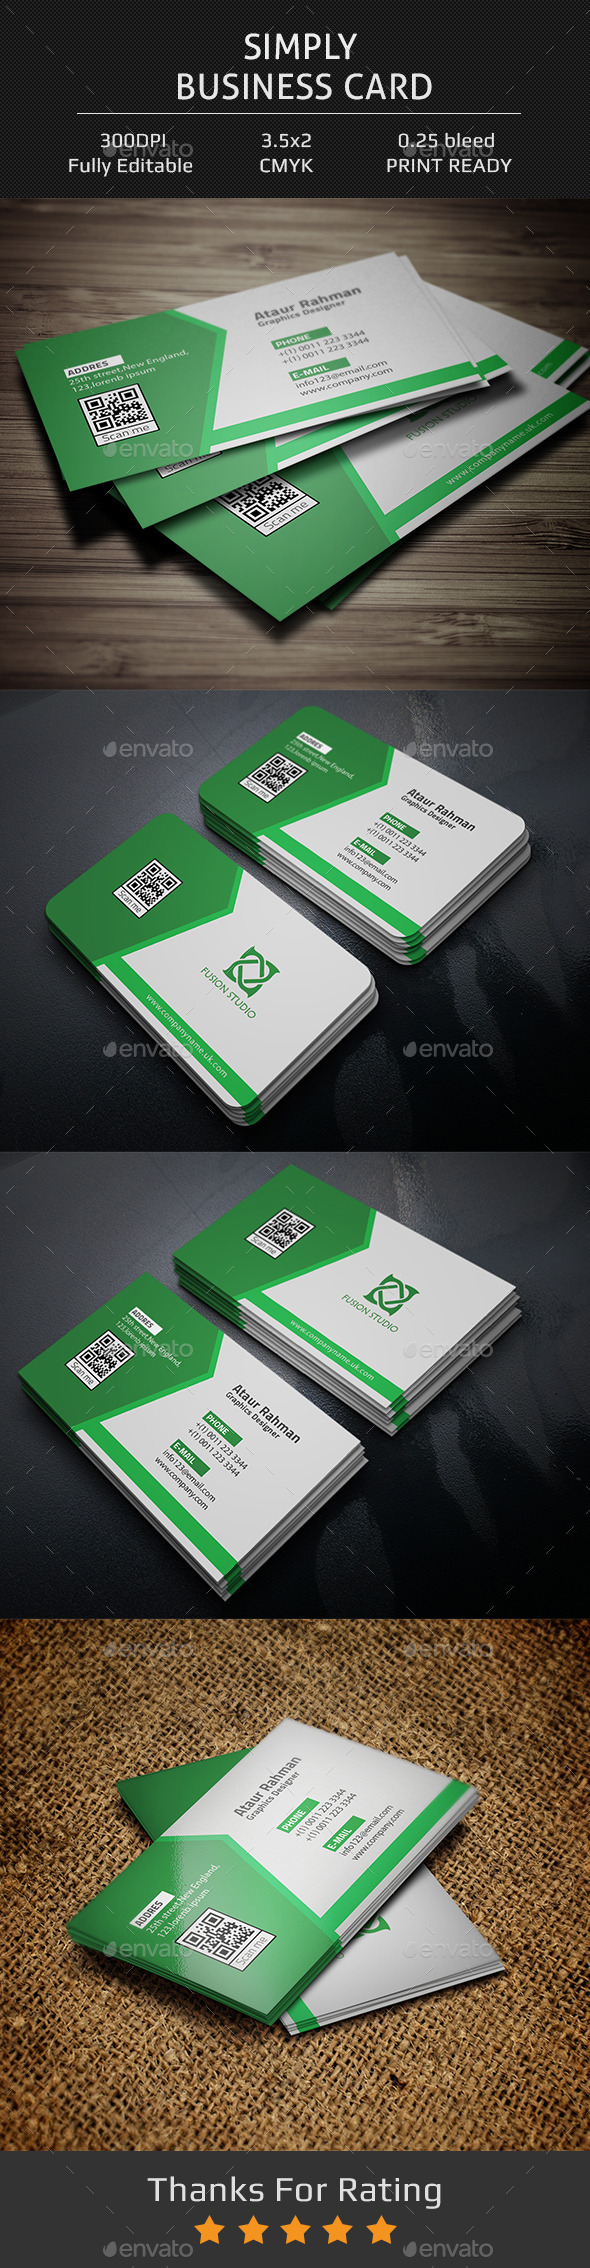 GraphicRiver Simply Business Card 11968356